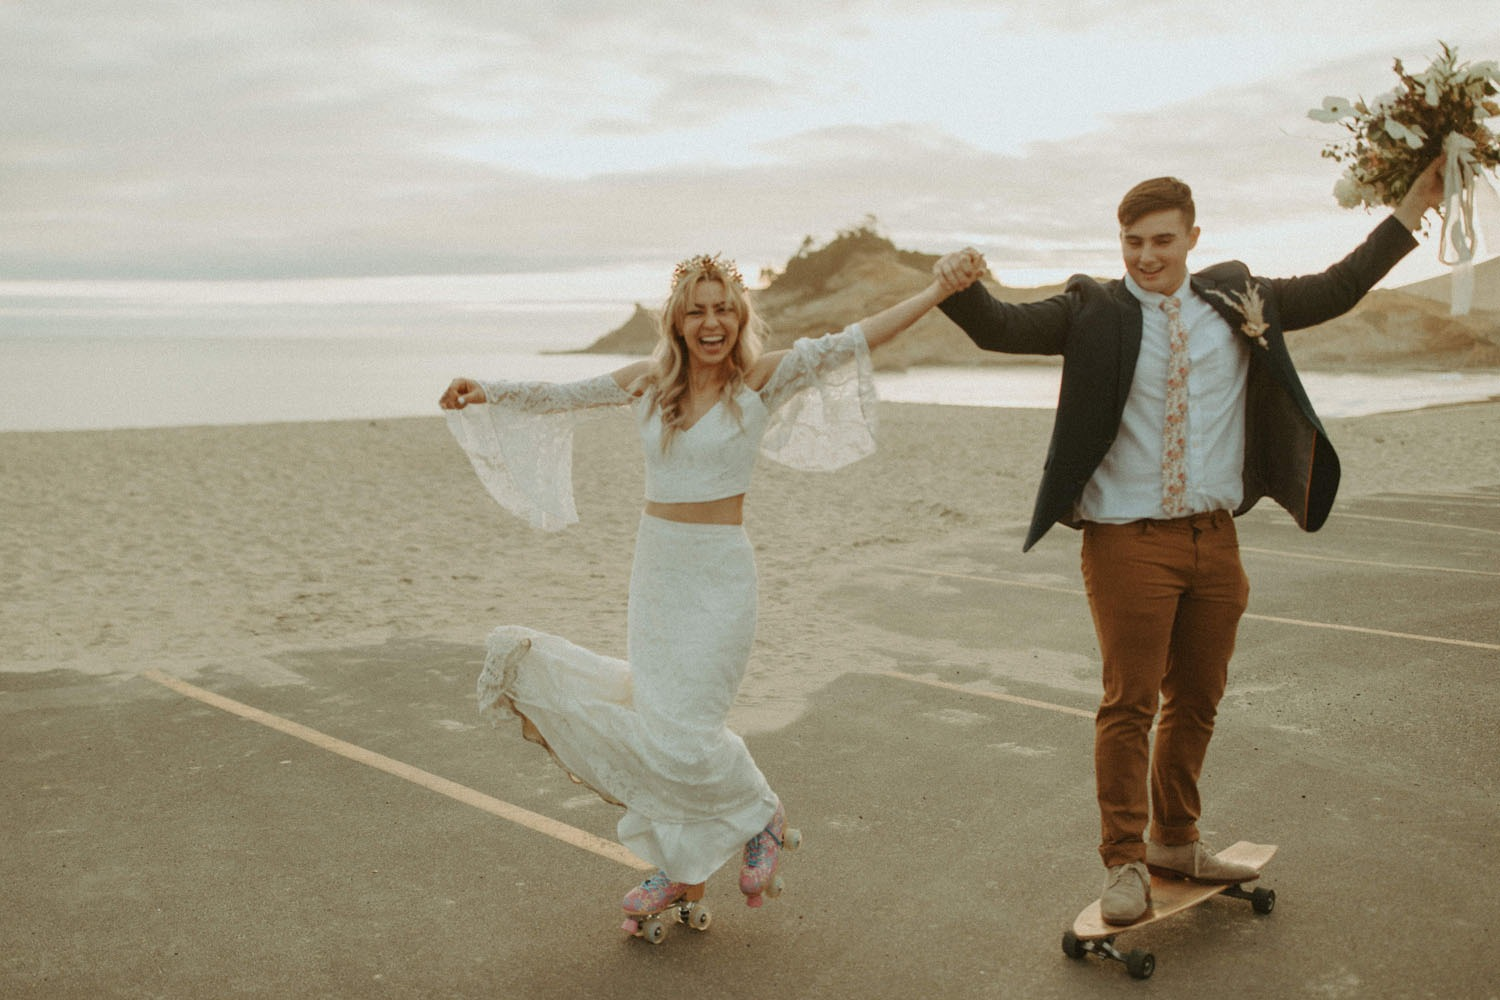 couple roller blading and skateboarding by the beach during their Cape Kiwanda destination wedding